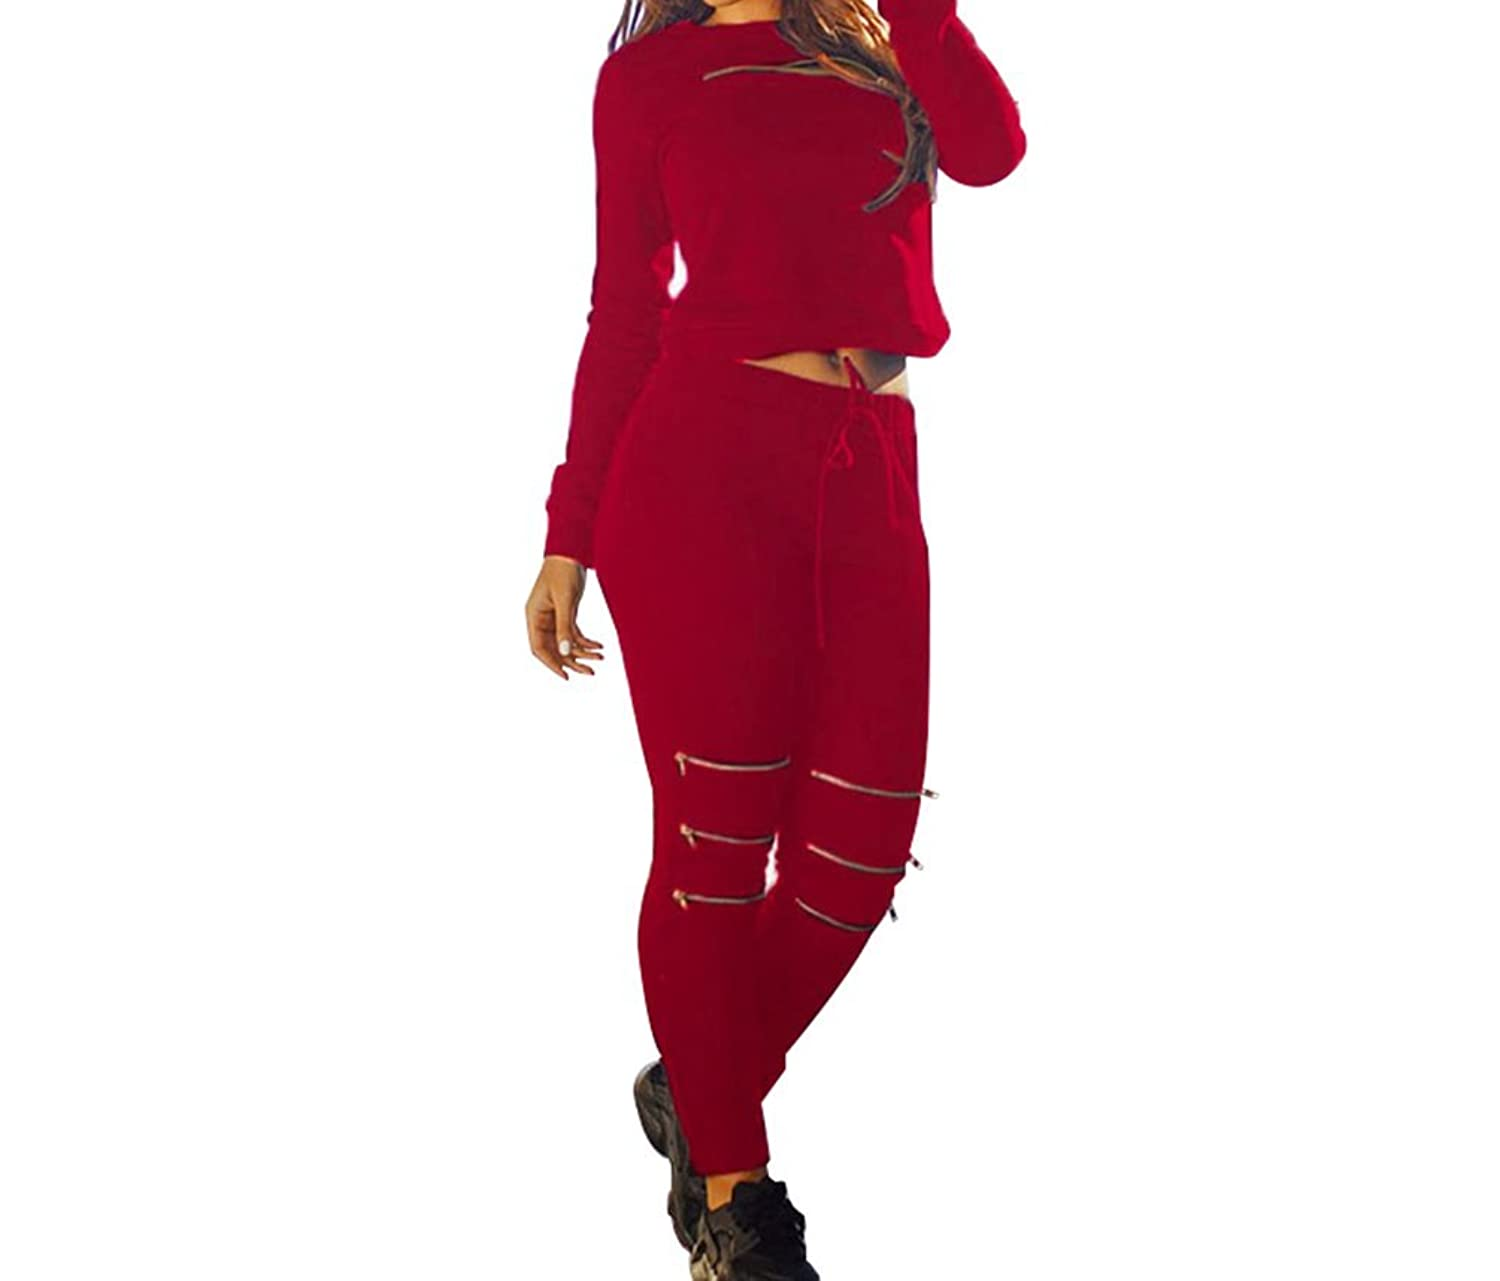 FQHOME Womens Red Fashion Sporty Zipped Pants Set